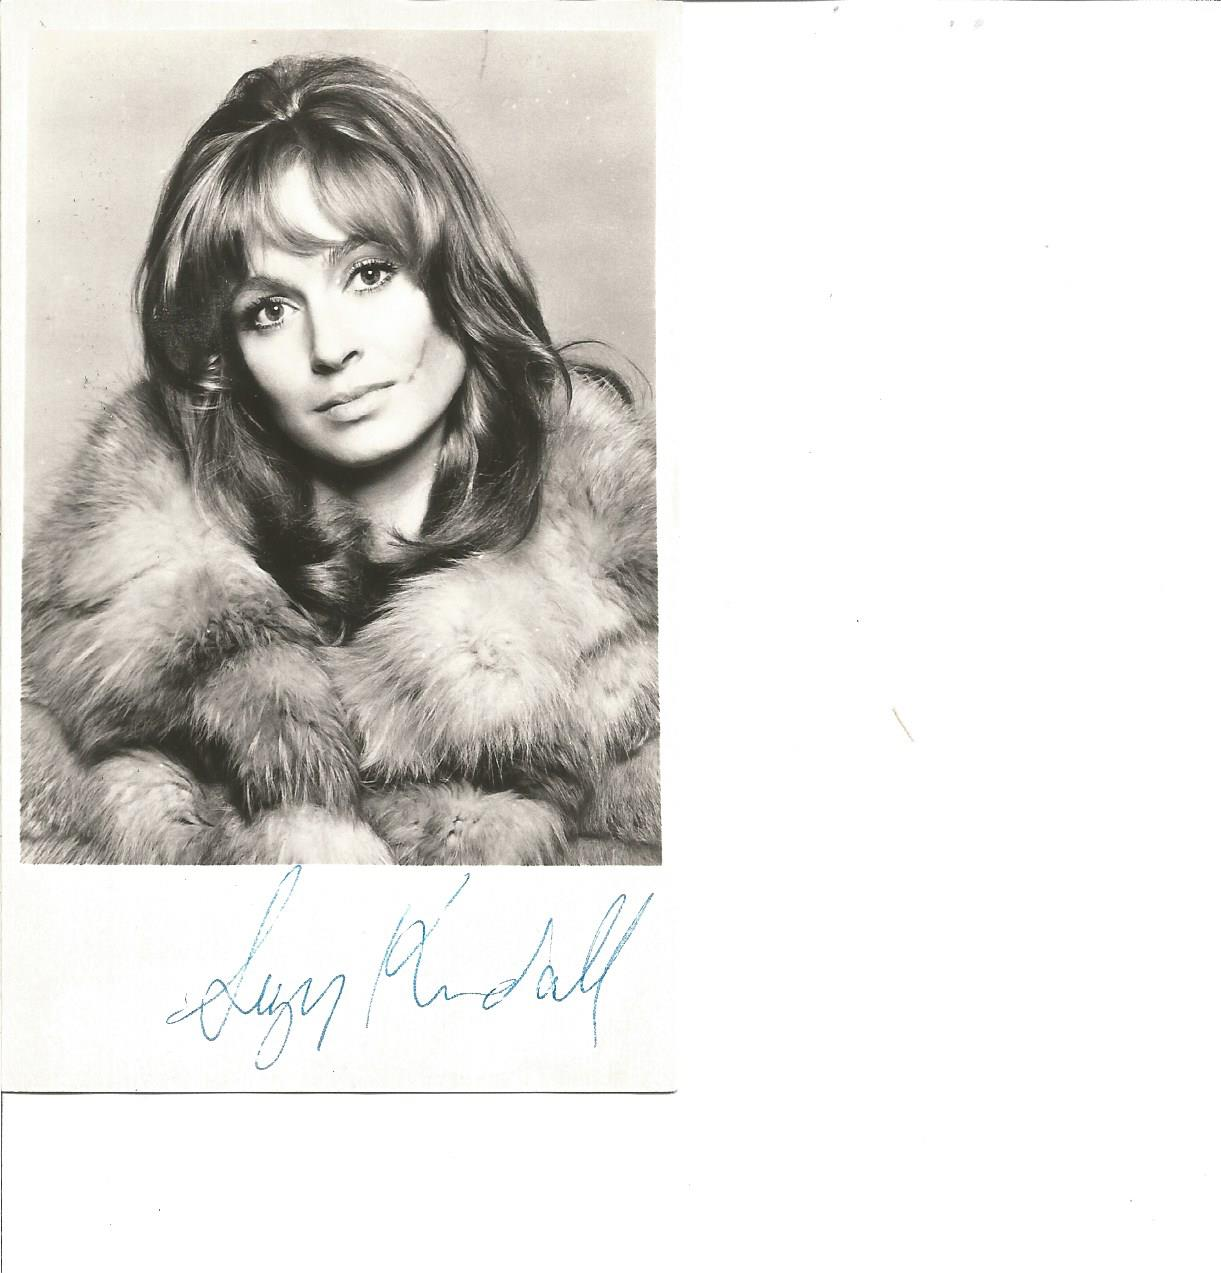 Lot 71 - Suzy Kendall signed 6x4 b/w photo. Good Condition. All signed pieces come with a Certificate of